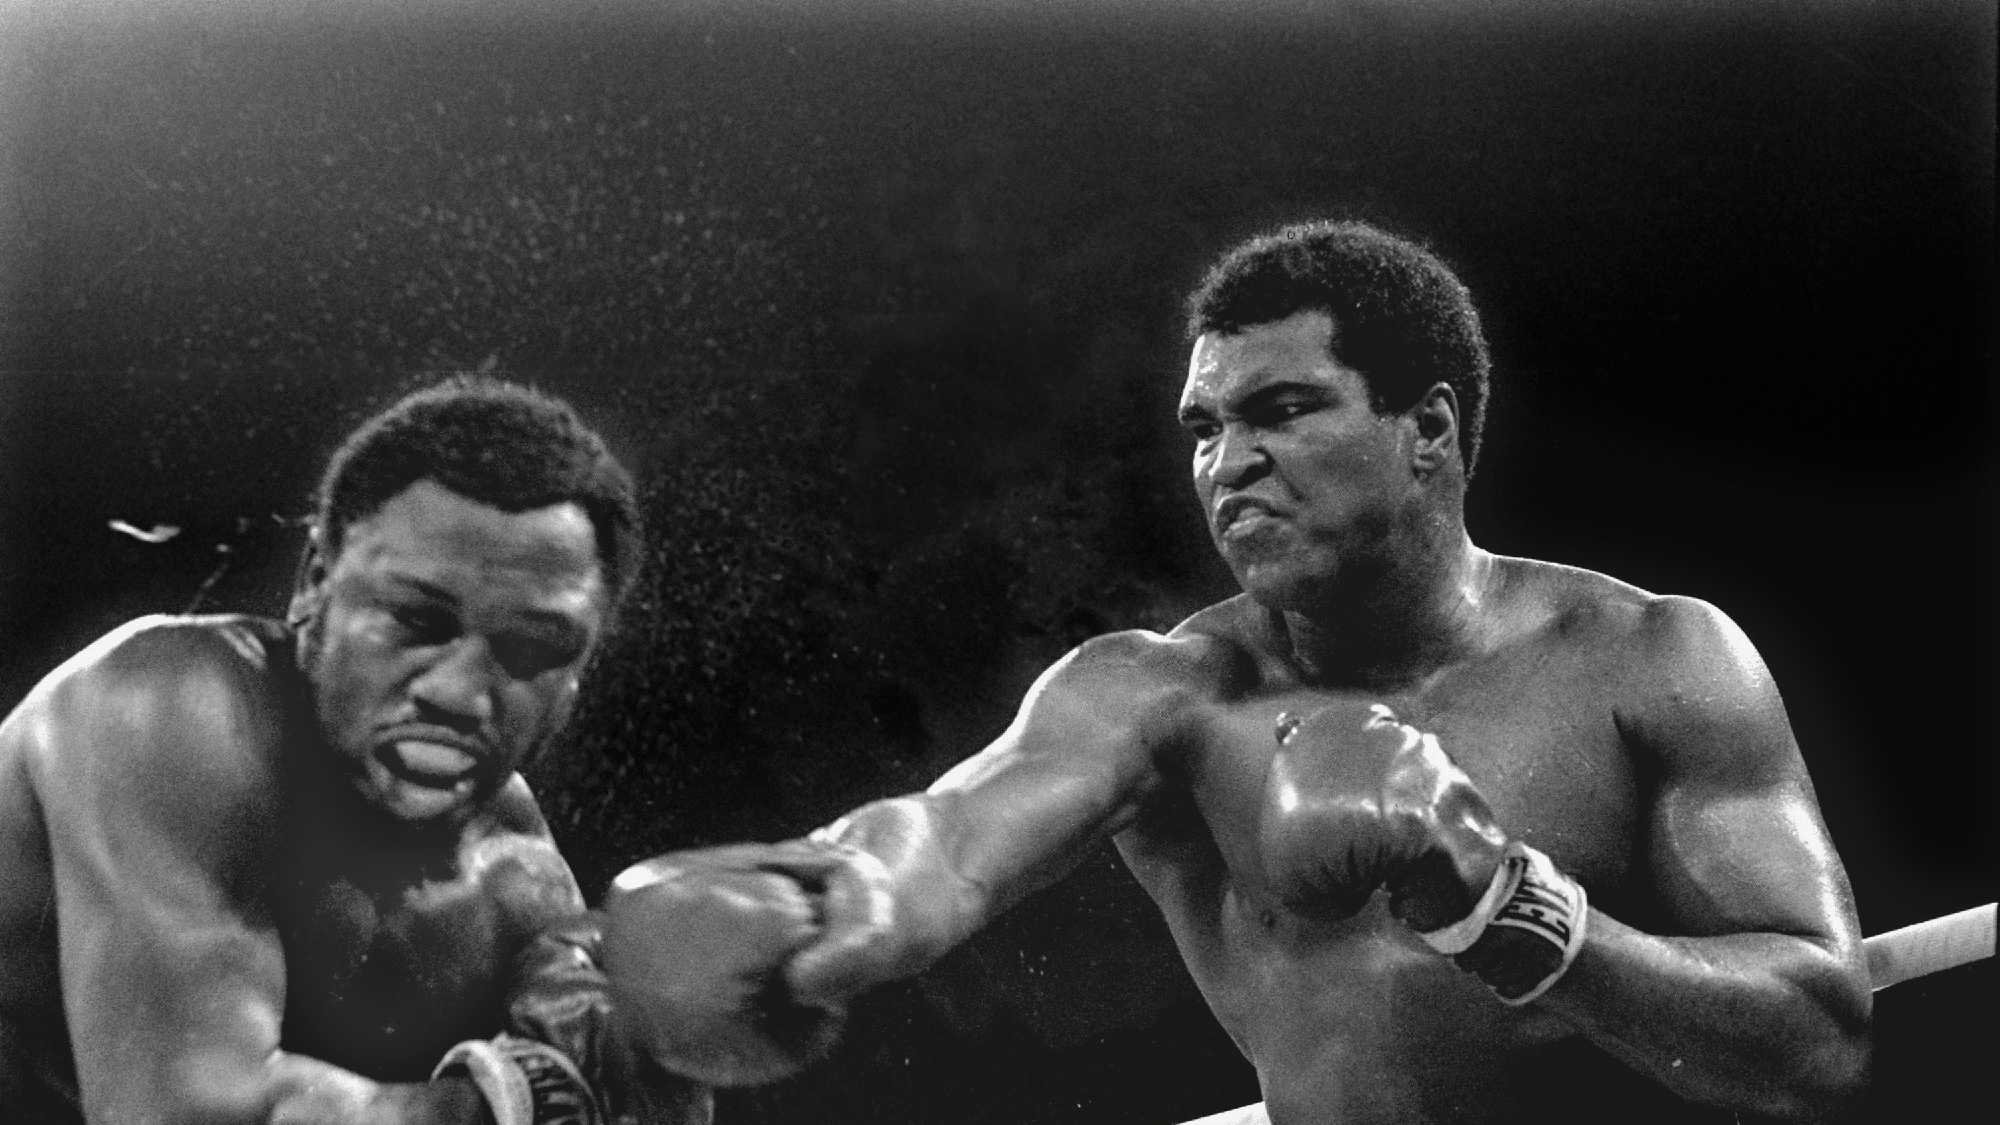 Spray flies from the head of challenger Joe Frazier as heavyweight champion Muhammad Ali connects with a right in the ninth round of their title fight in Manila, Philippines, October 1, 1975. Ali won the fight on a decision to retain the title.